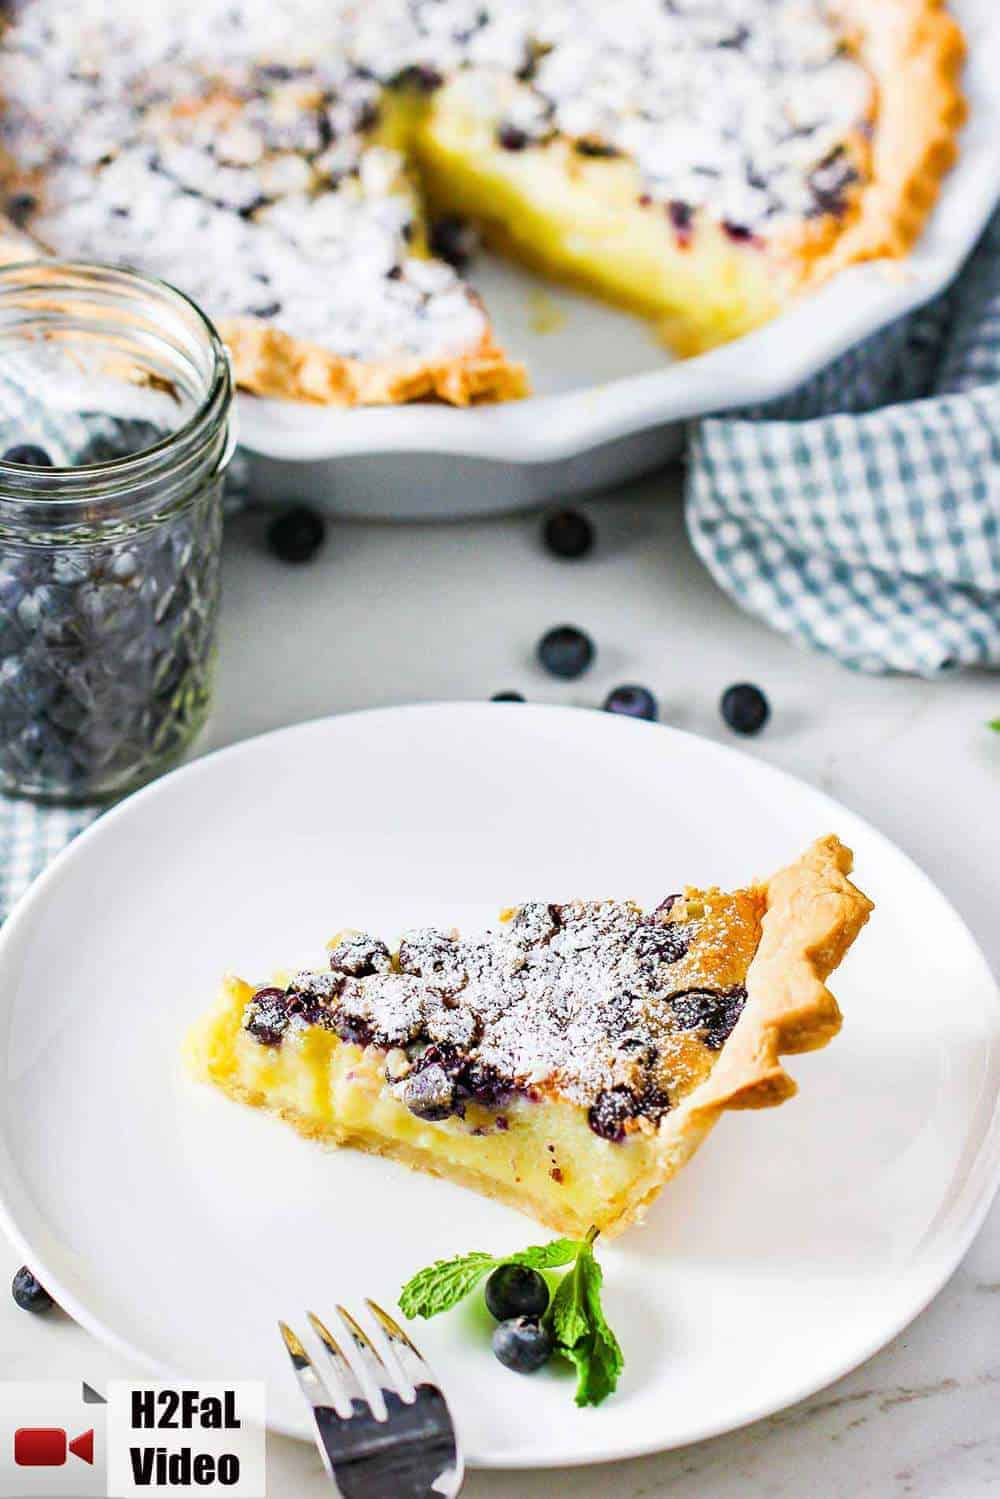 A slice of blueberry buttermilk pie on a white plate